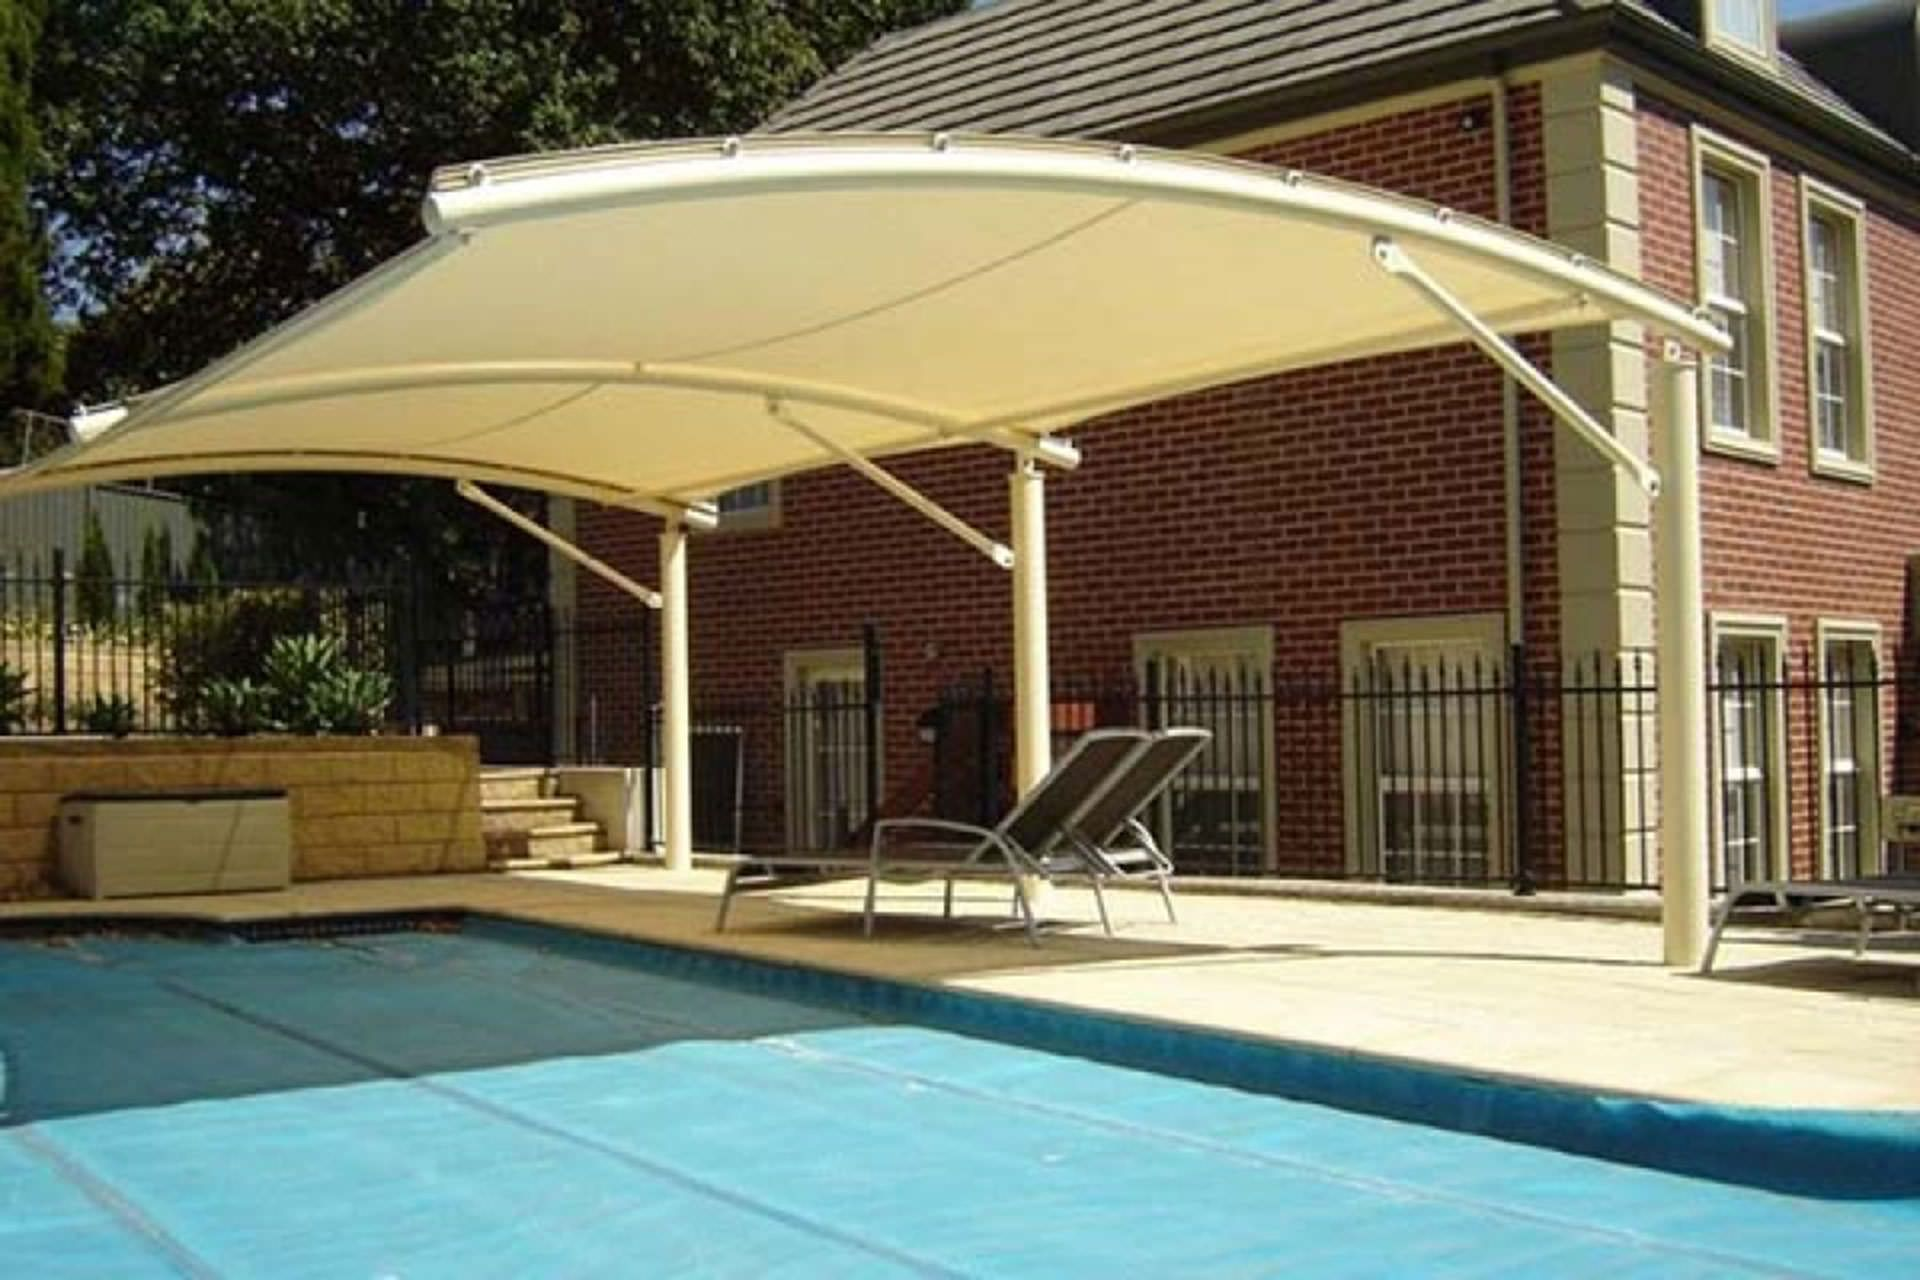 Pool Shade Ideas Cantilevered | Pool shade, Pool canopy ...